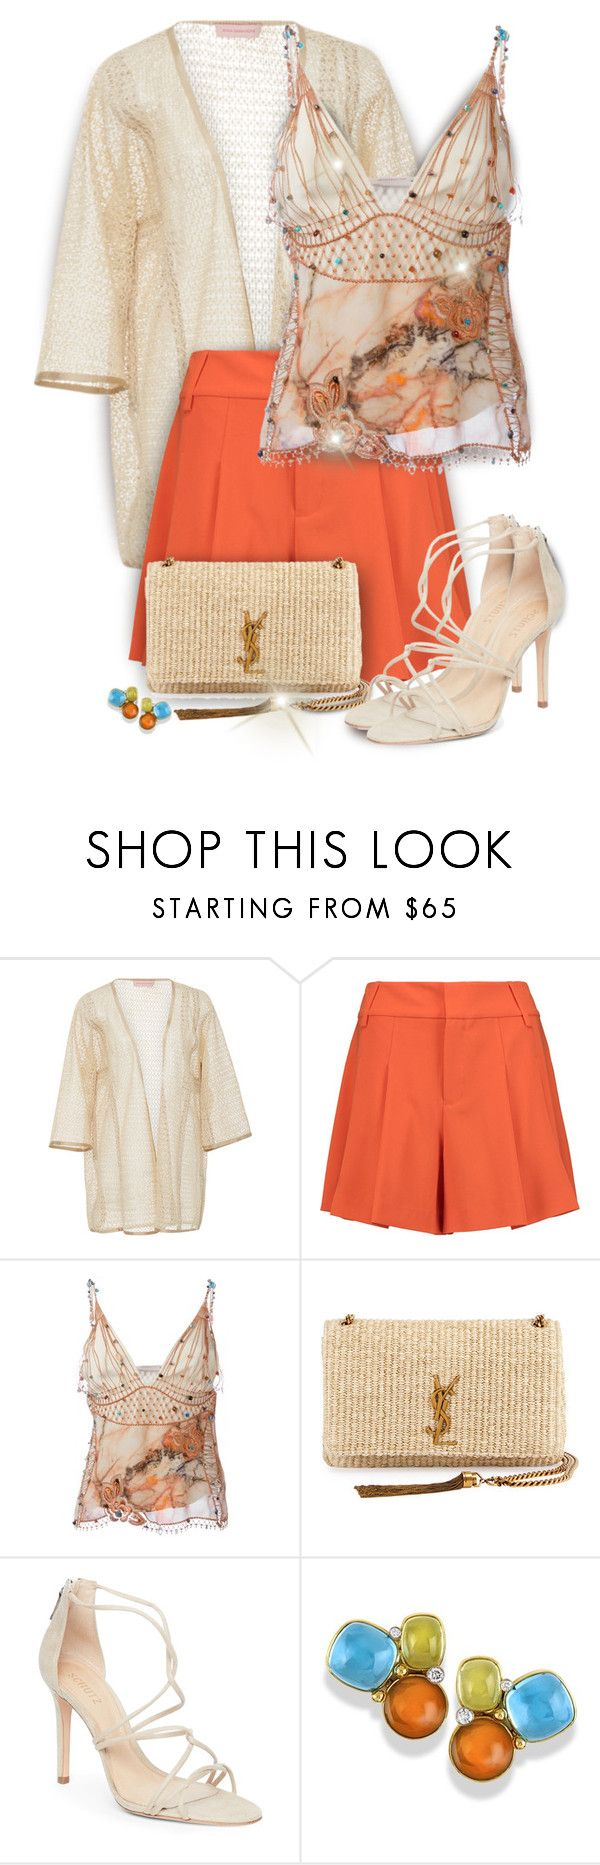 """""""Beaded Top"""" by kiki-bi ❤ liked on Polyvore featuring Anna Sammarone, Alice + Olivia, Christopher Kane, Yves Saint Laurent, Schutz, Clutch, shorts, sandals and beadedtop"""